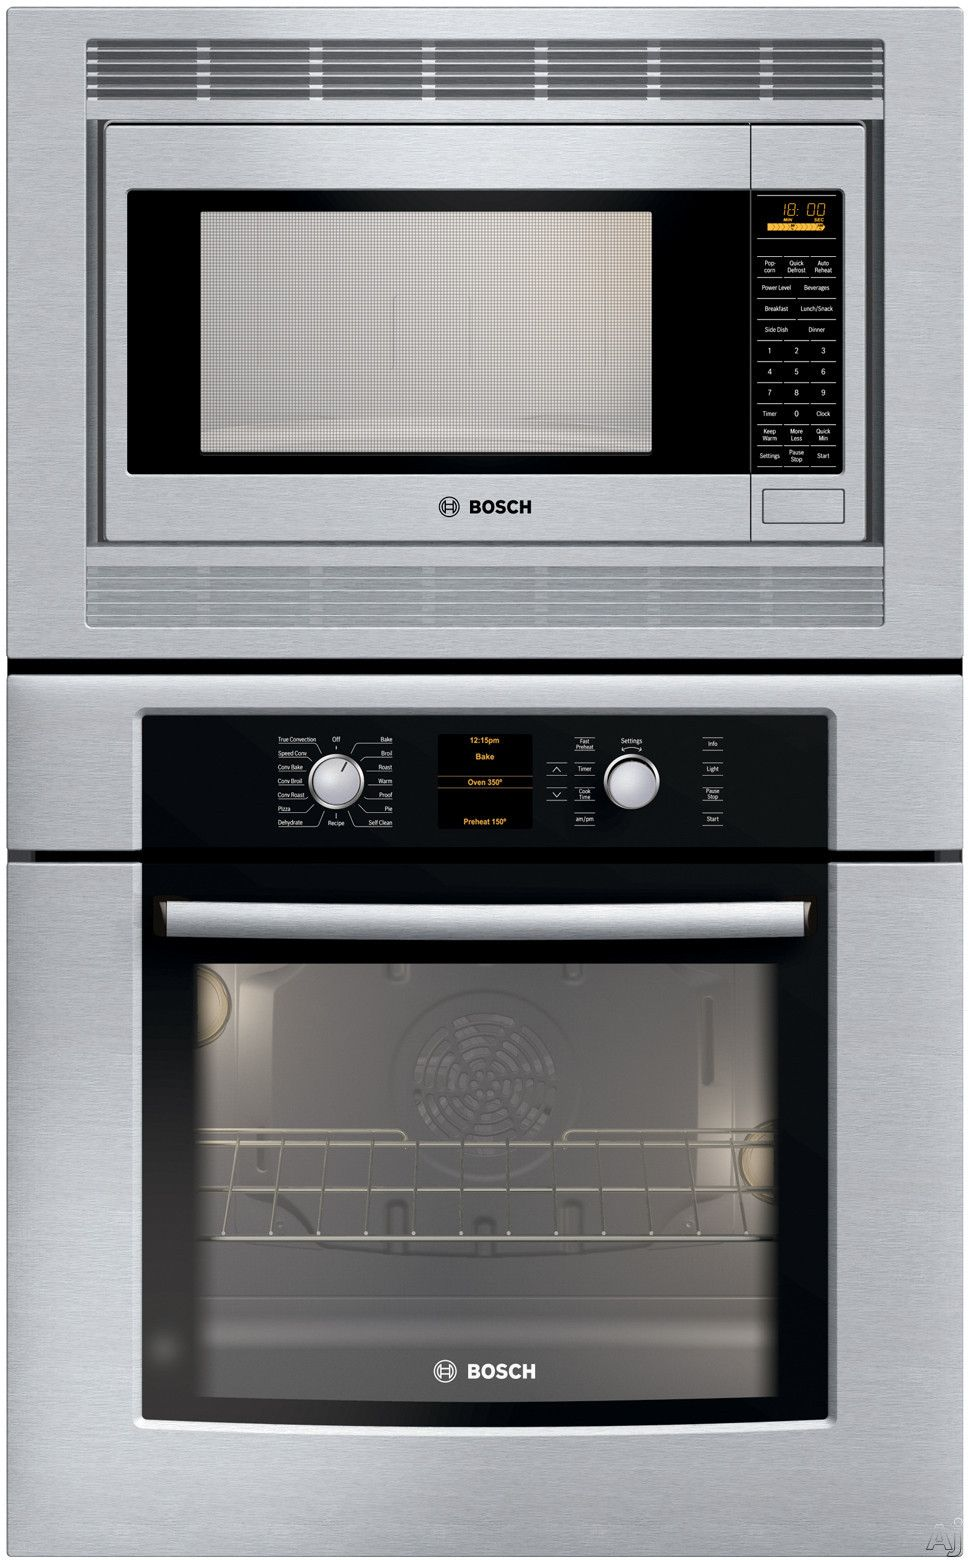 Bosch Wall Oven Micro Combo Great For Small Spaces Tiny House